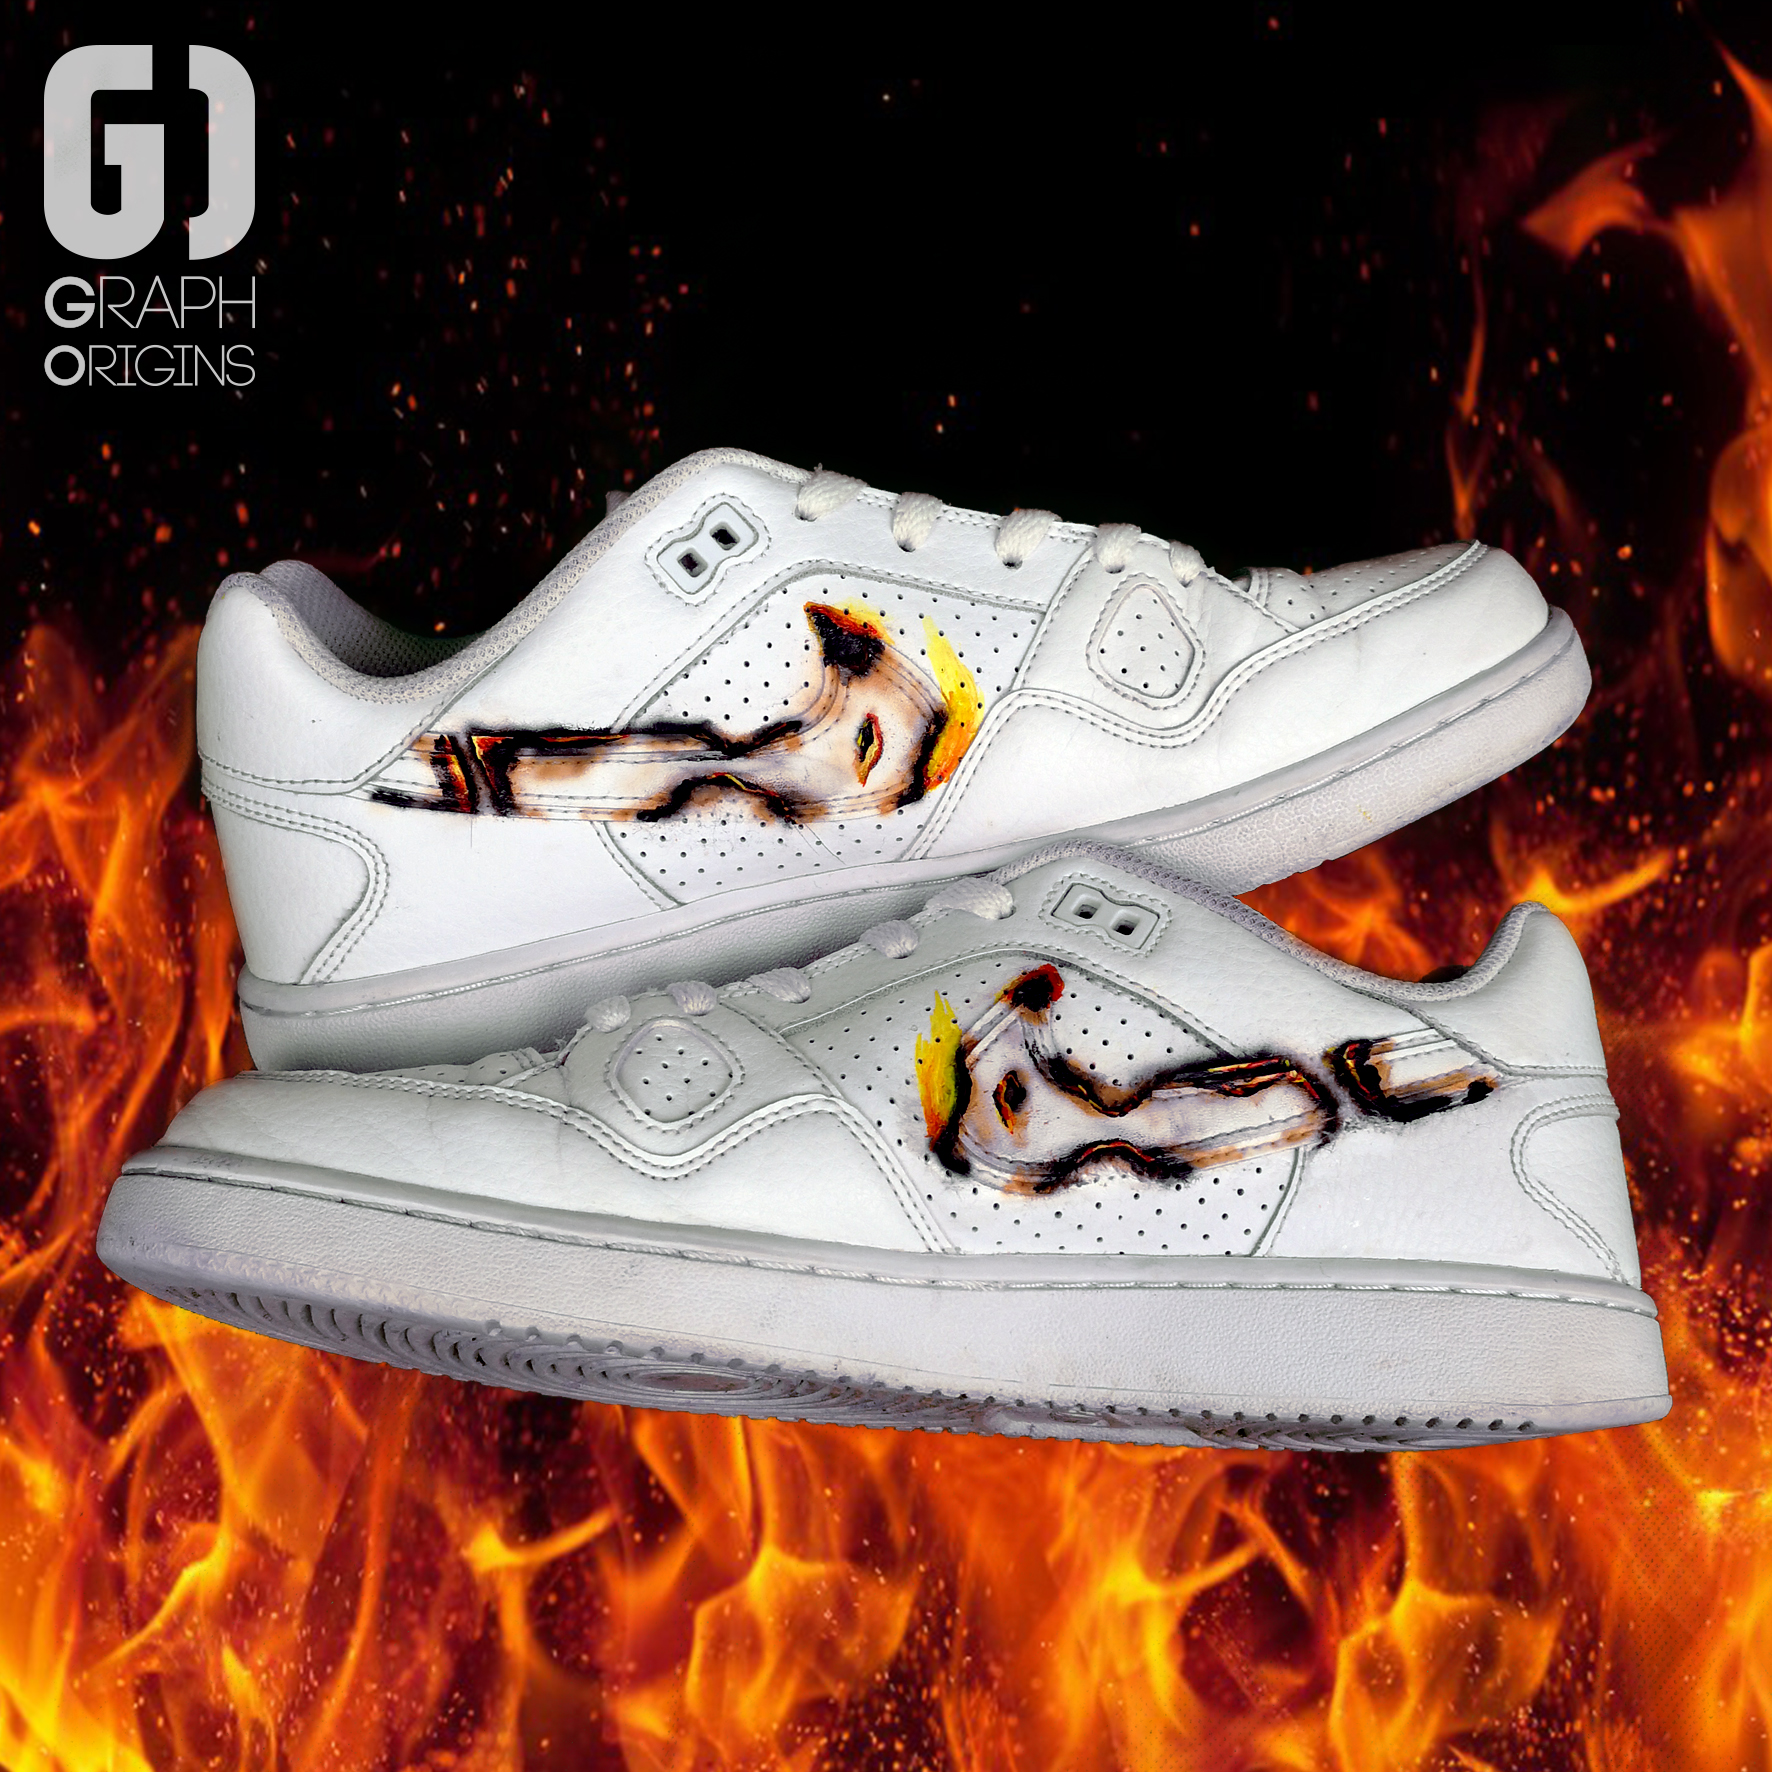 Burned custom Phoenix Nike 2